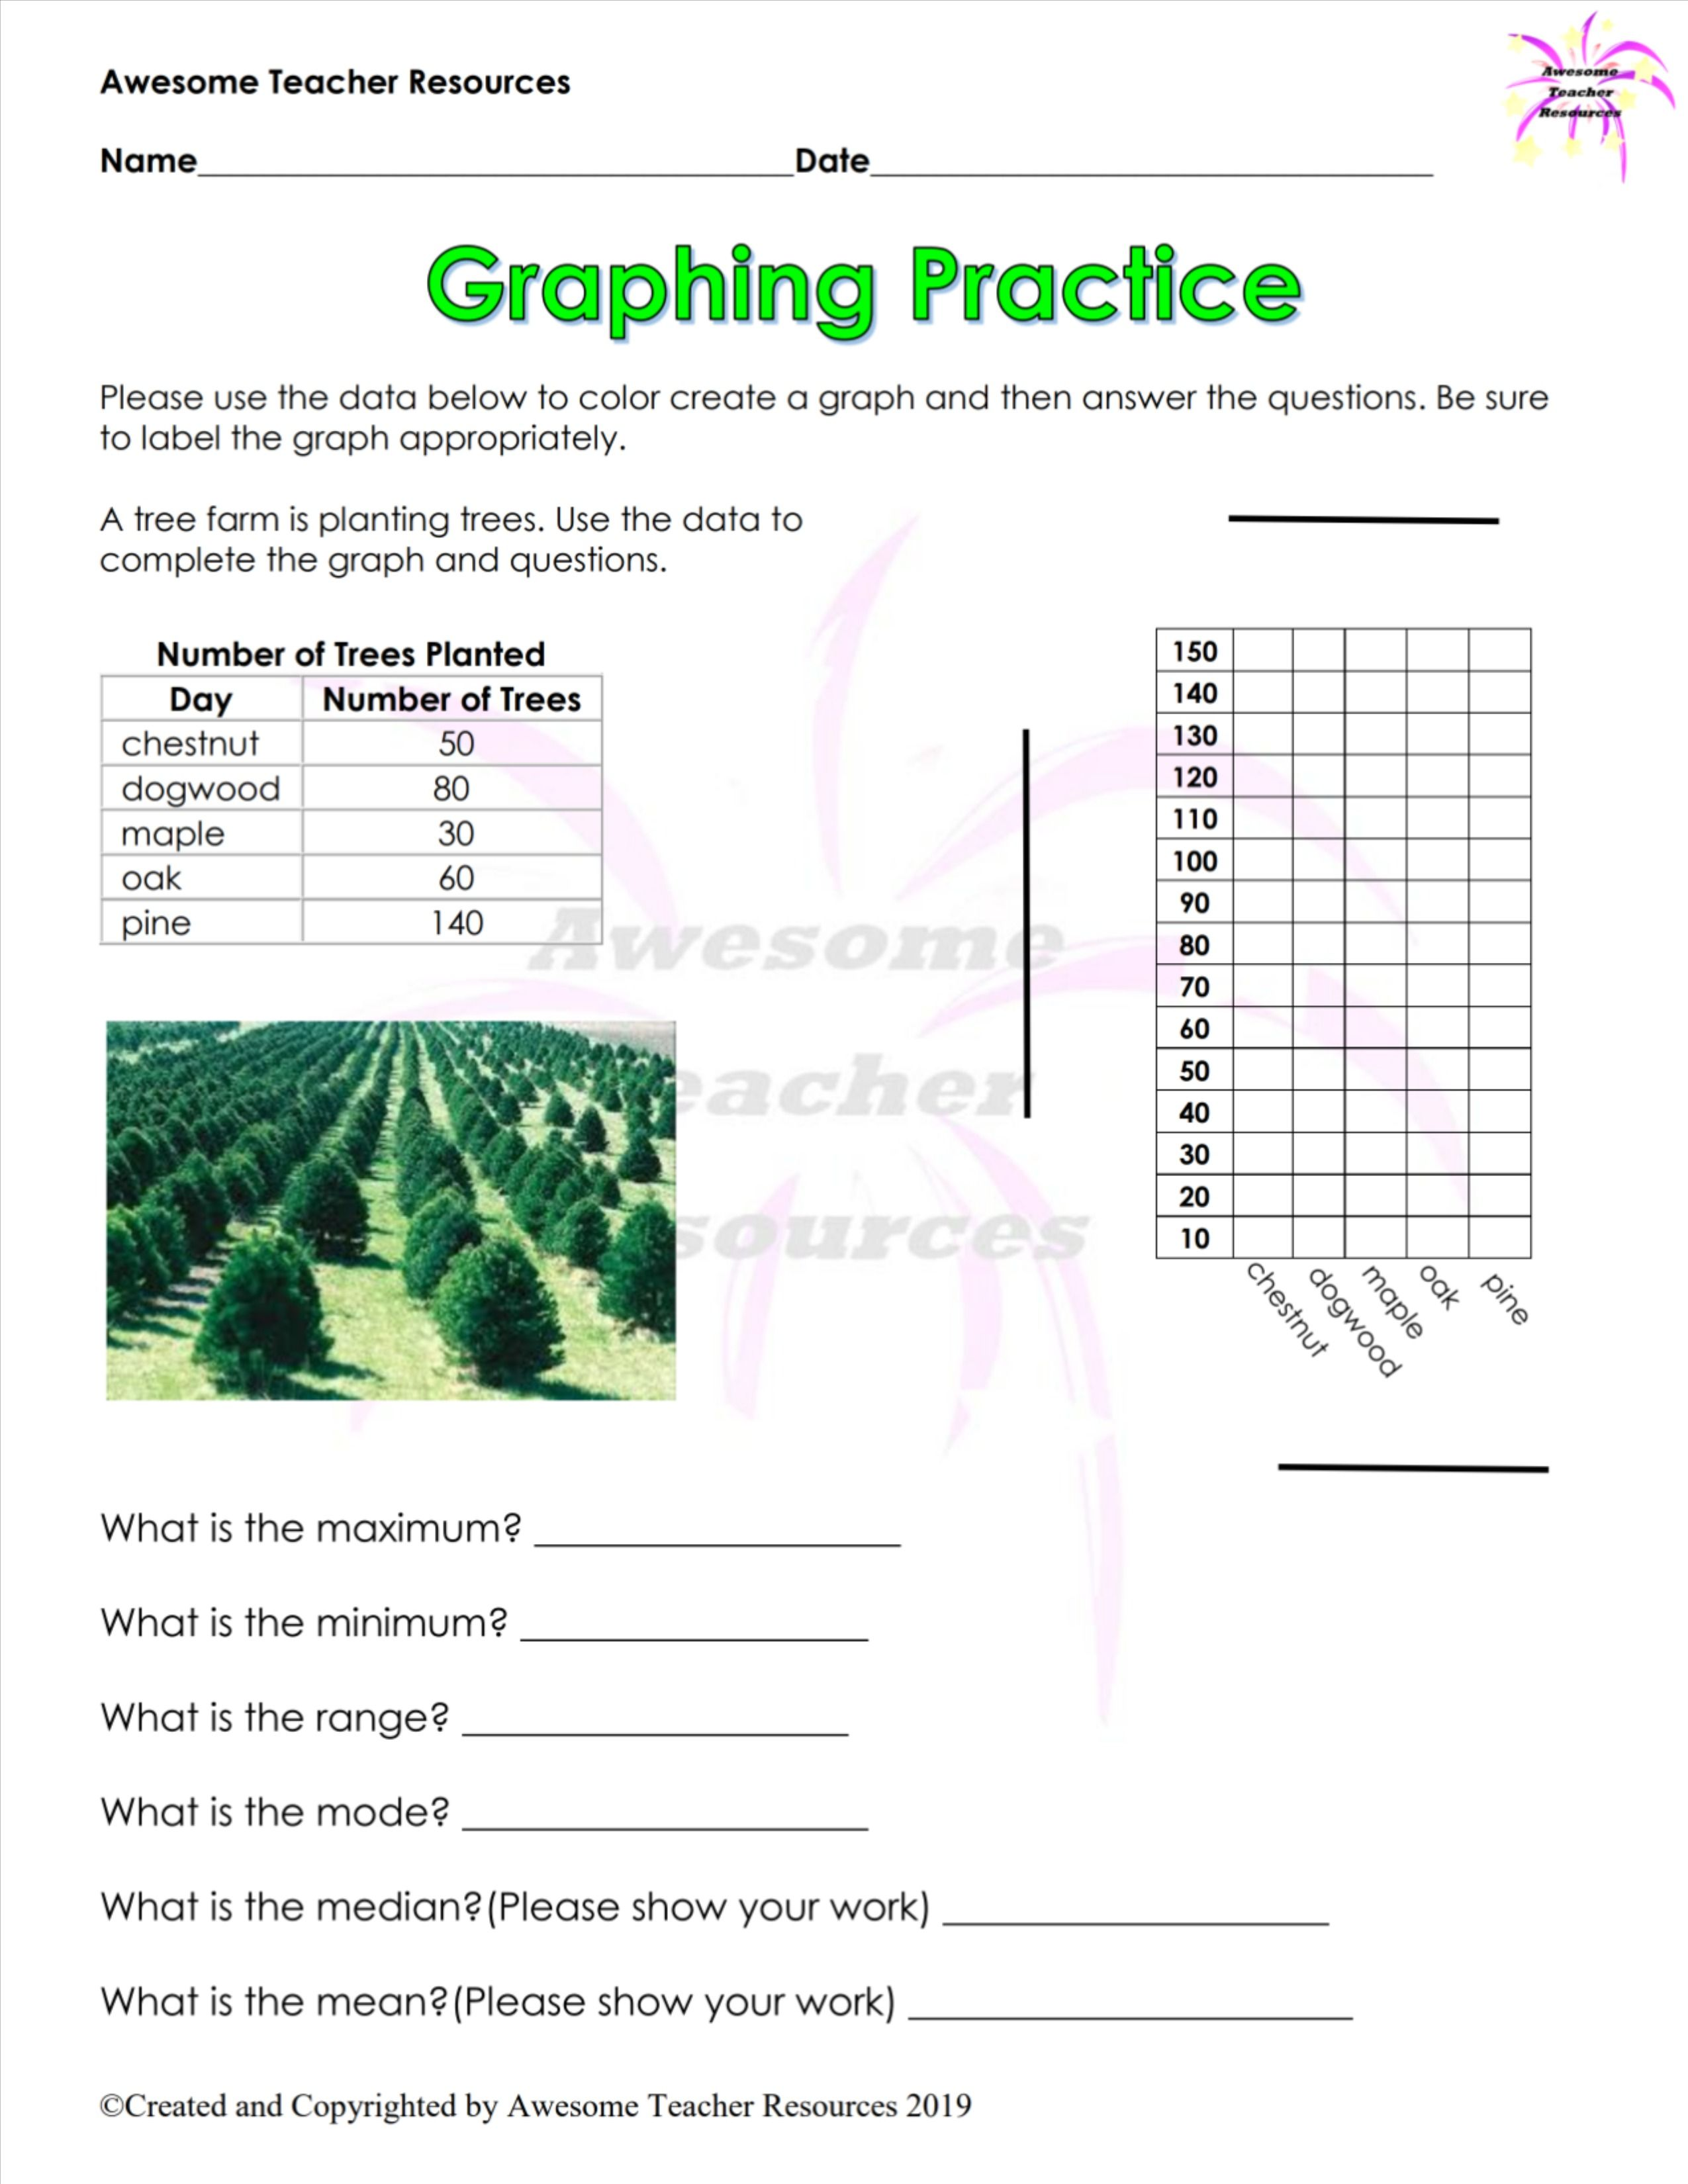 Graphing Practice Worksheet 1 In